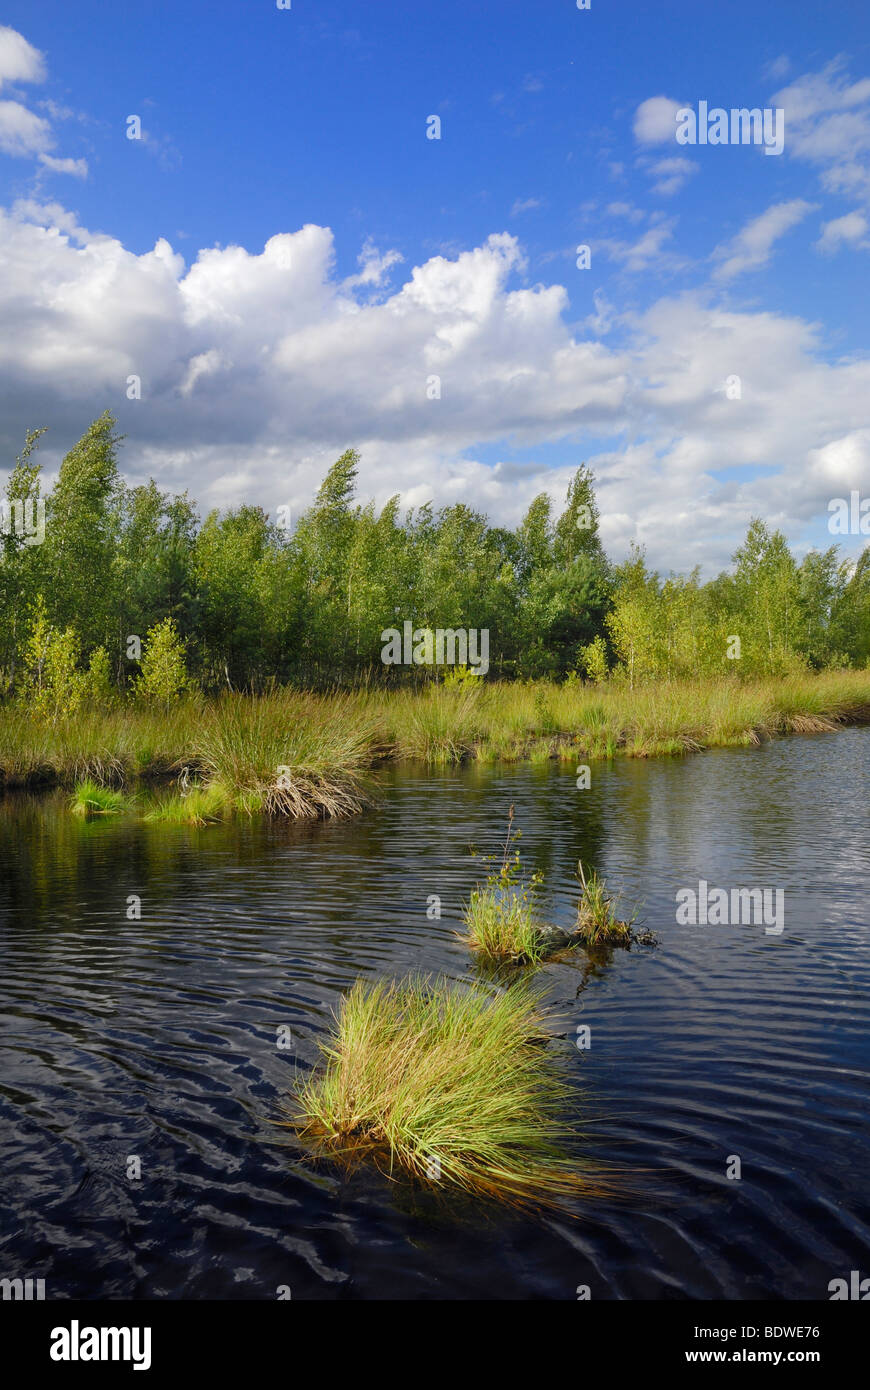 Moor landscape with pond and birch grove (Betula pubescens), foothills of the Alps, Grundbeckenmoor area, Nicklheim, Stock Photo